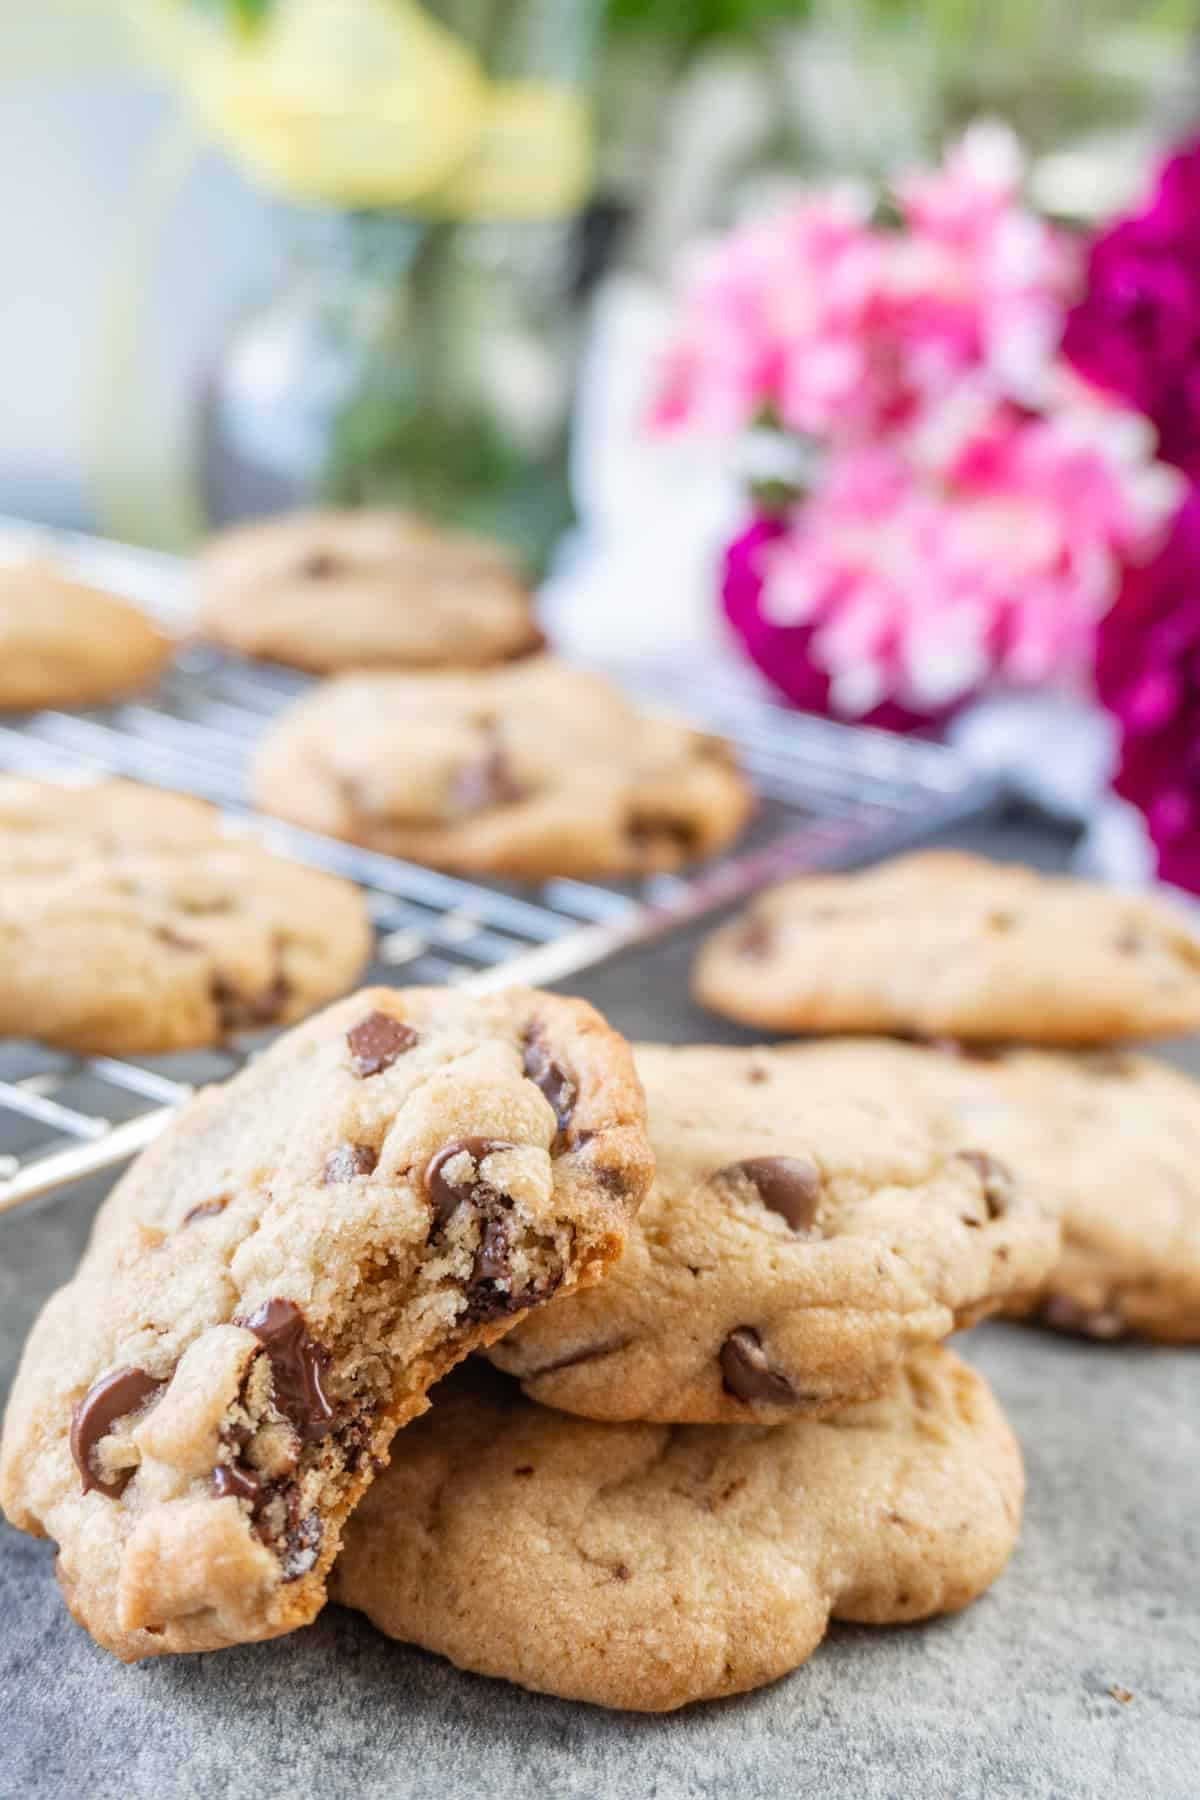 chocolate chip pudding cookies with bite taken out, flowers and cookies in background